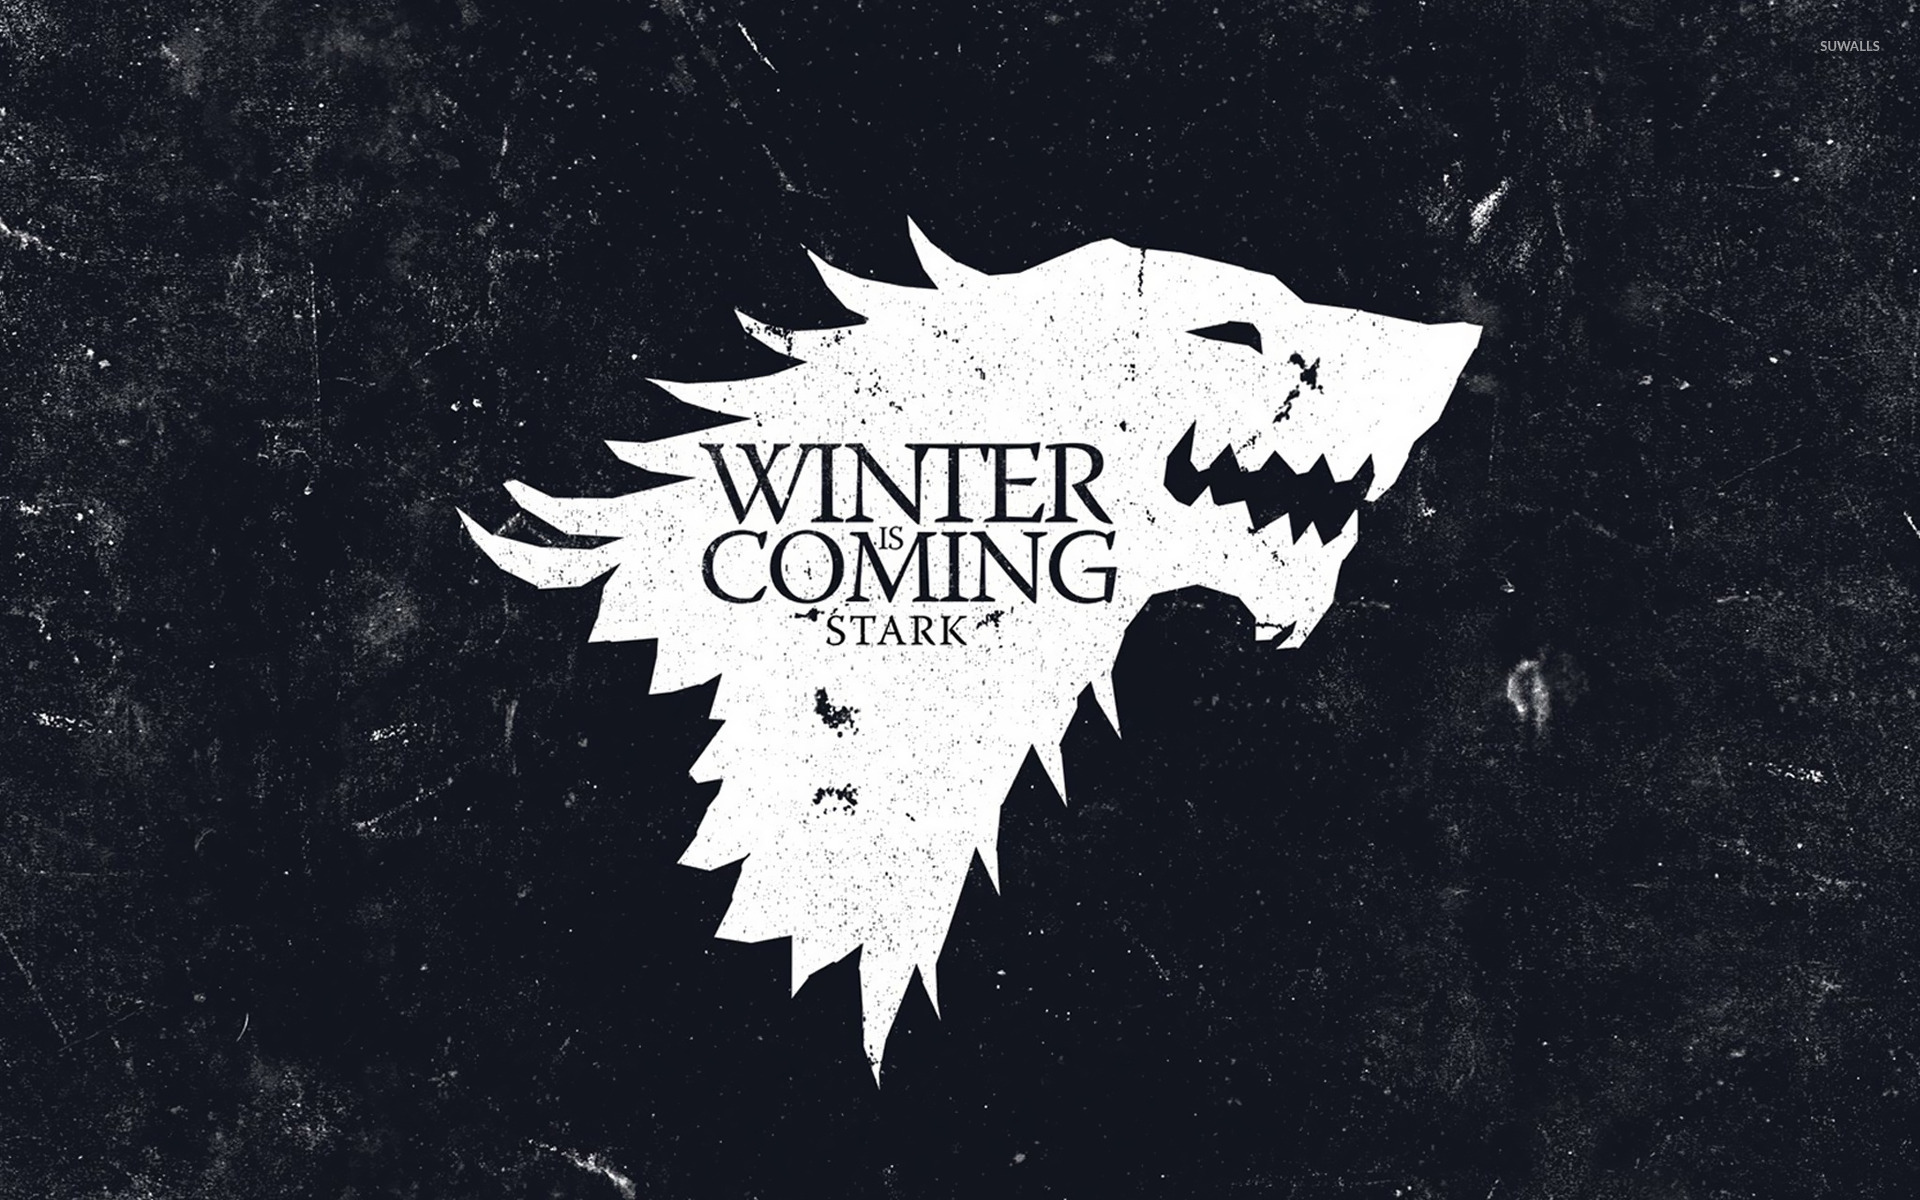 Winter Is Coming 2 Wallpaper TV Shows Game Of Thrones